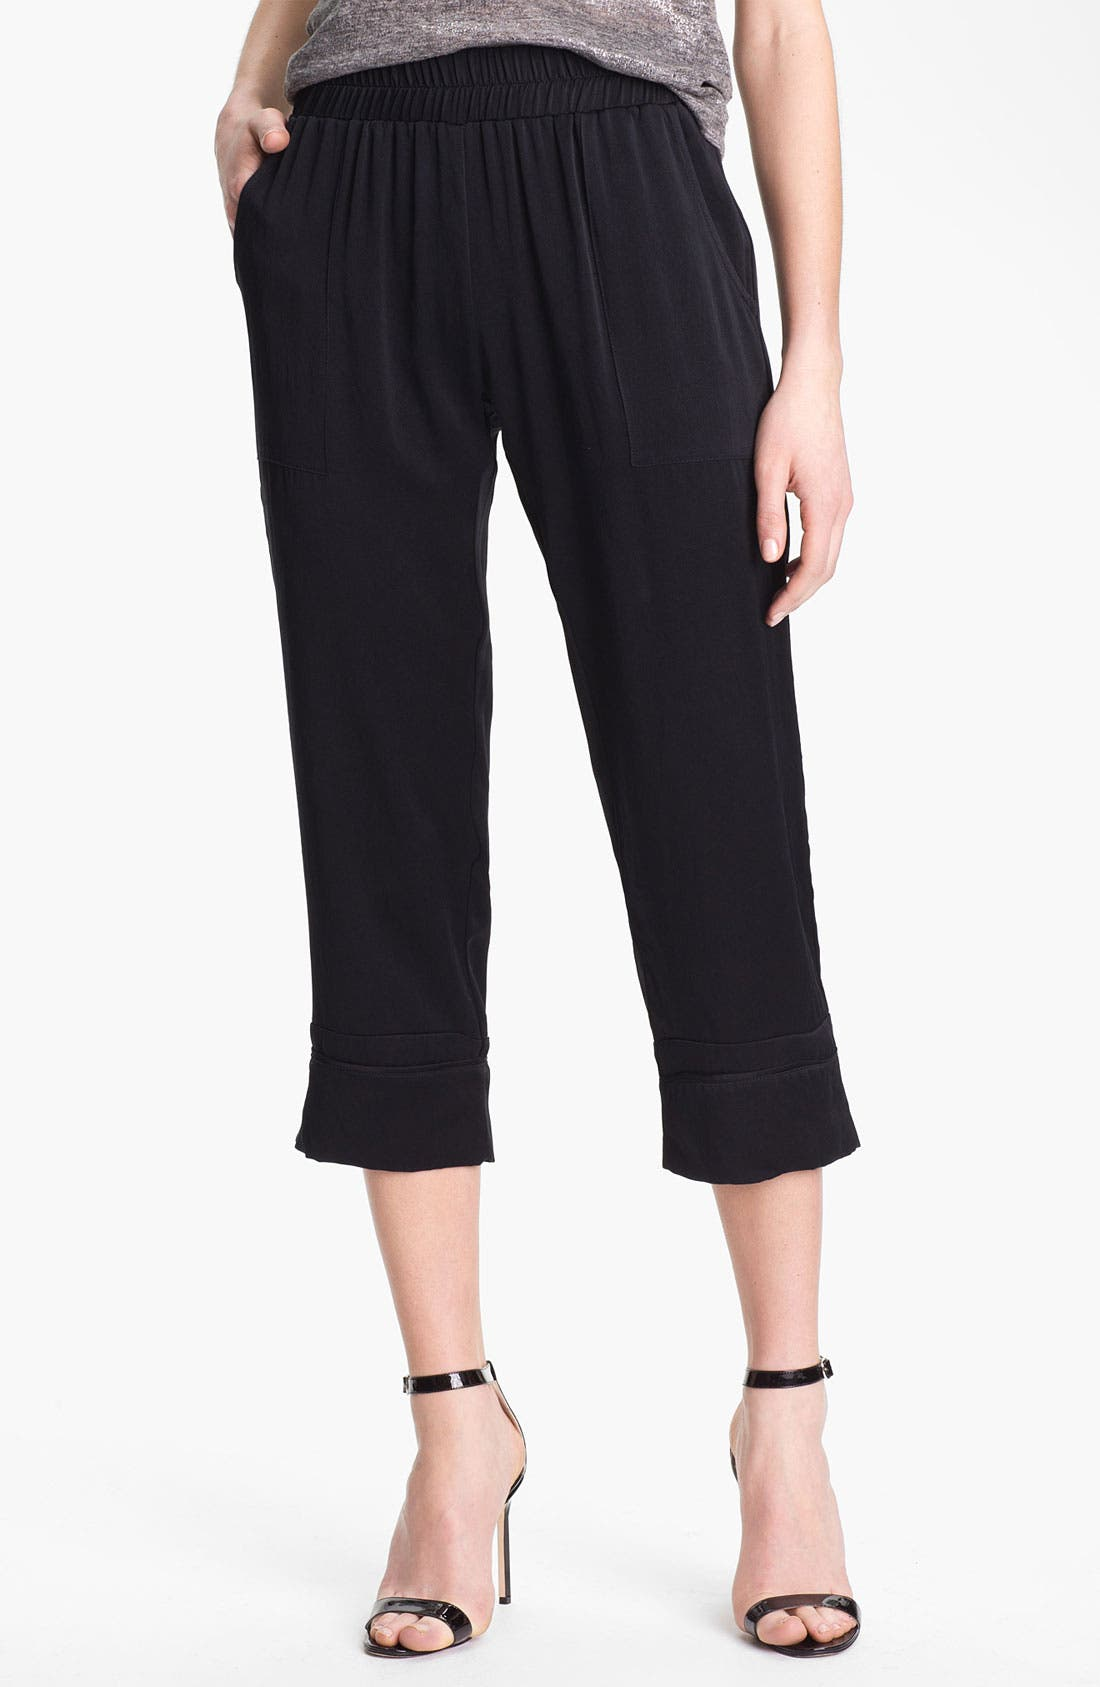 Alternate Image 1 Selected - Man Repeller X PJK 'Rani' Silk Lounge Pants